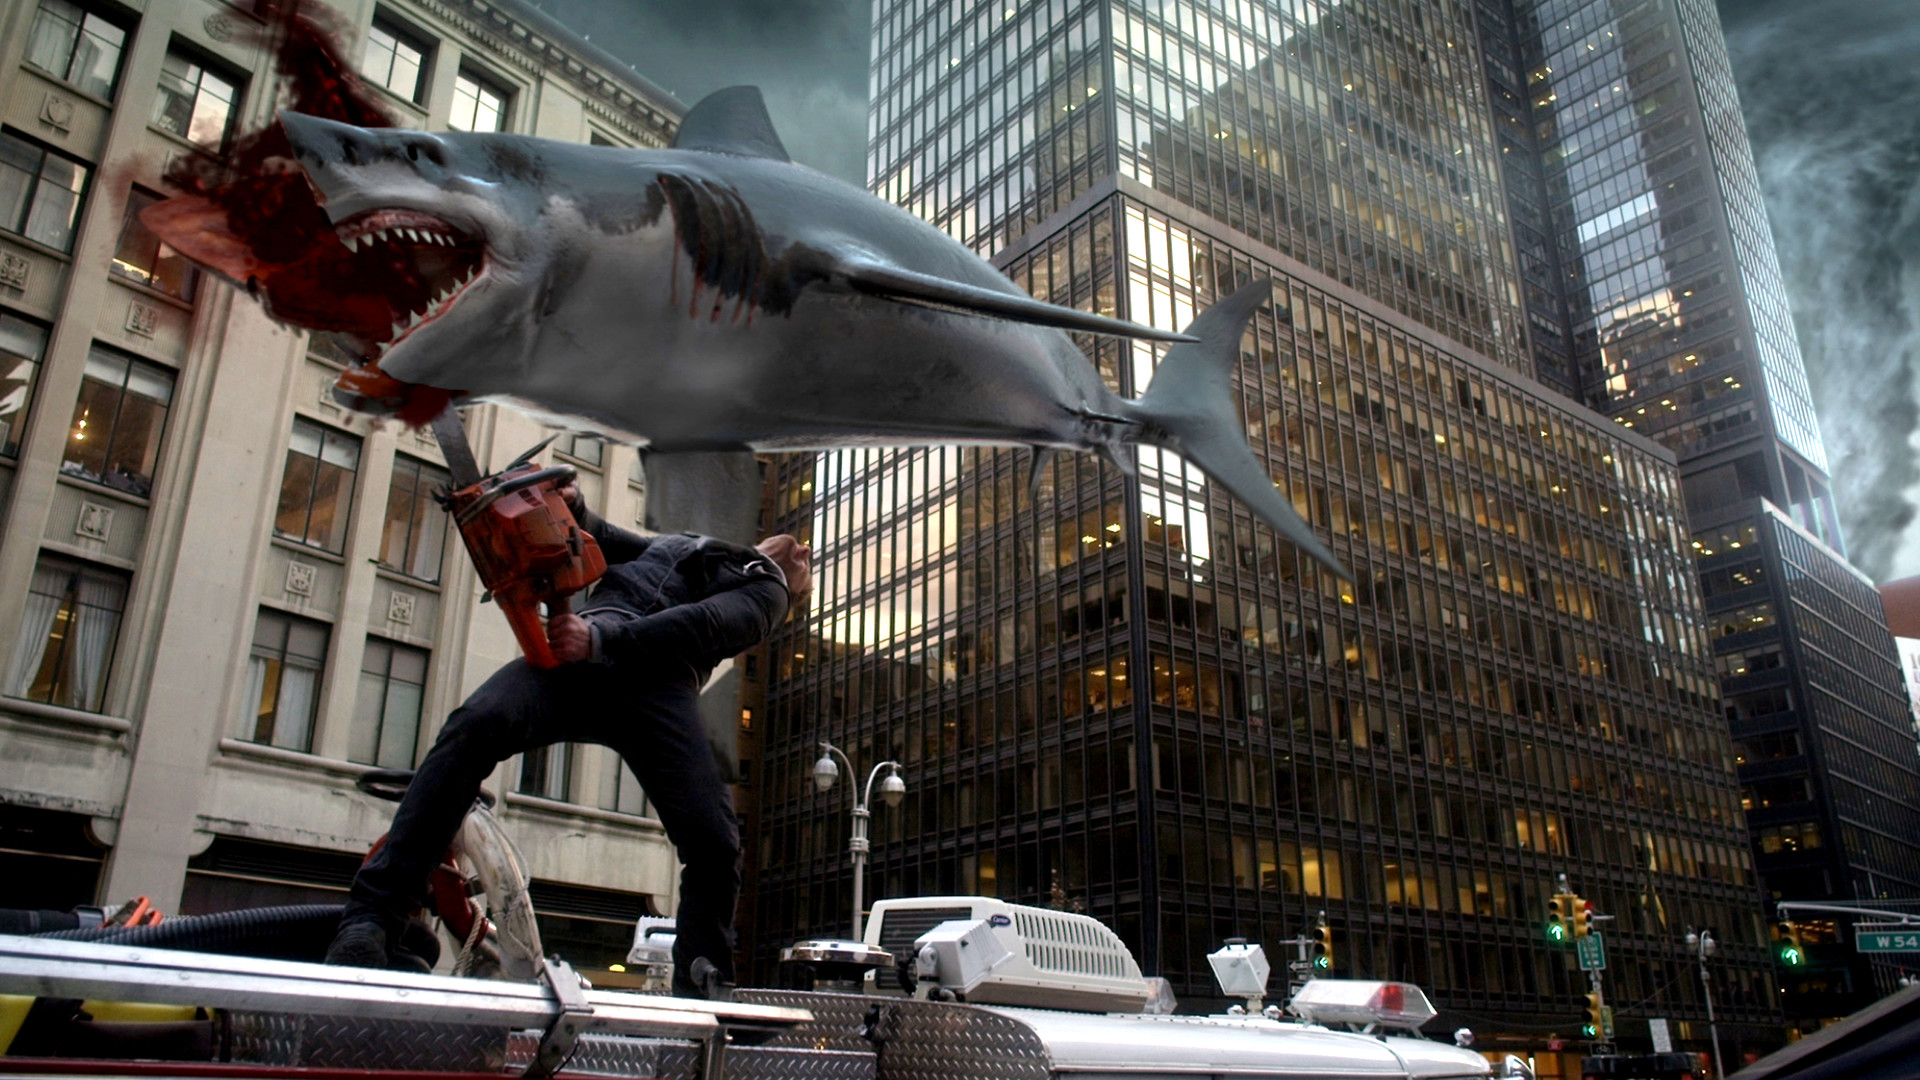 Ian Ziering and chainsaw vs shark in the streets of New York City in Sharknado 2 The Second One (2014)